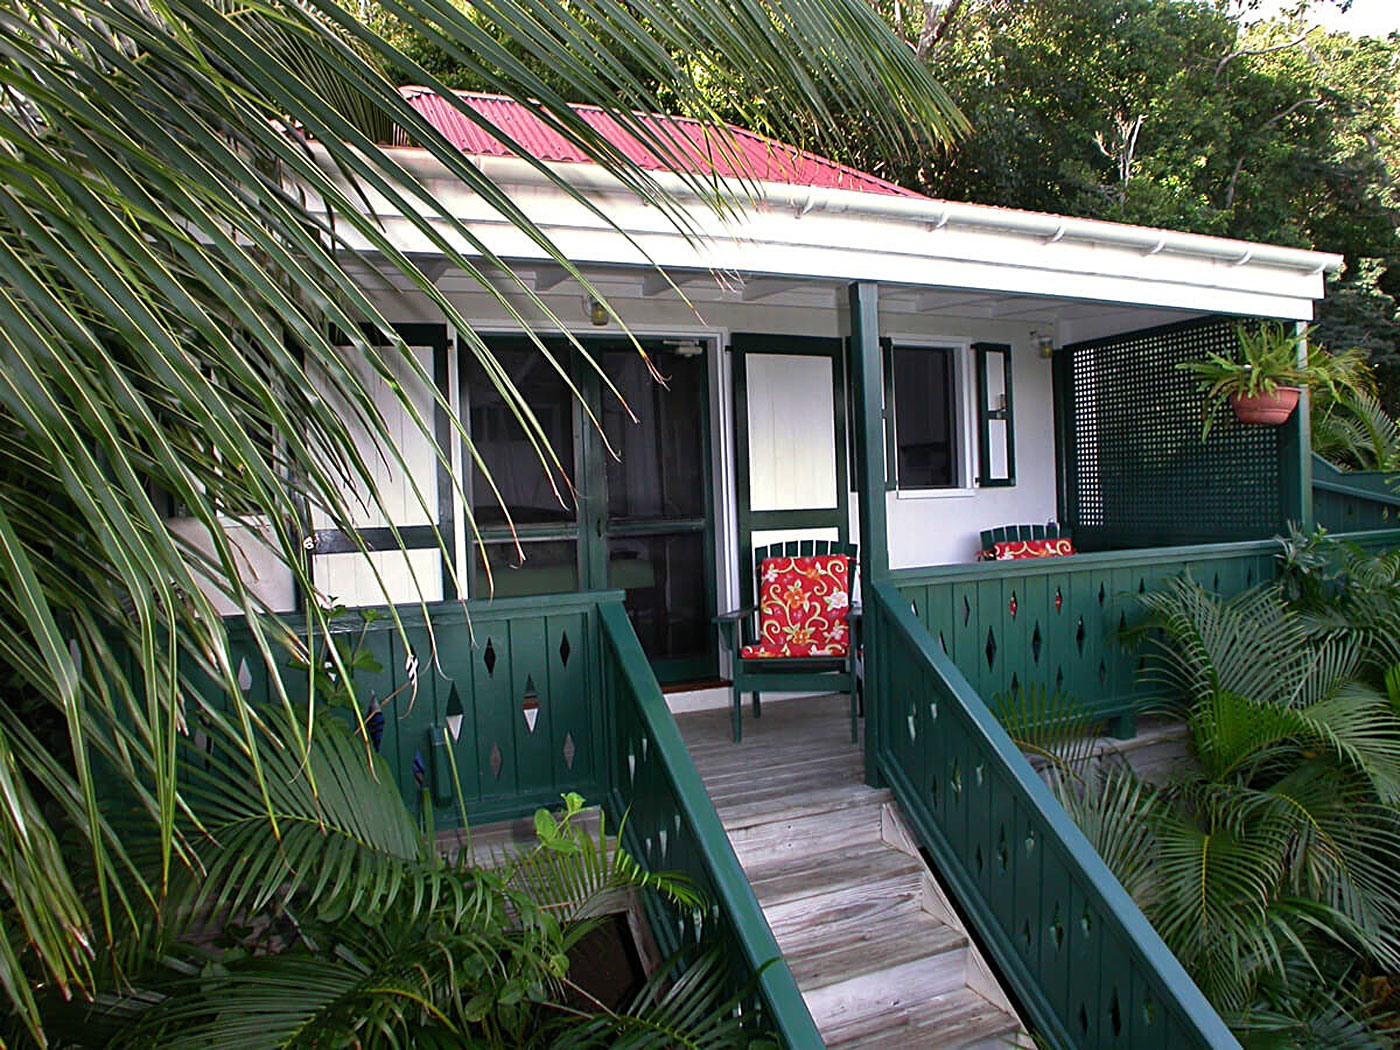 Windwardside Guest Cottage Coral Bay, St John US Virgin Islands entrance ot cottage